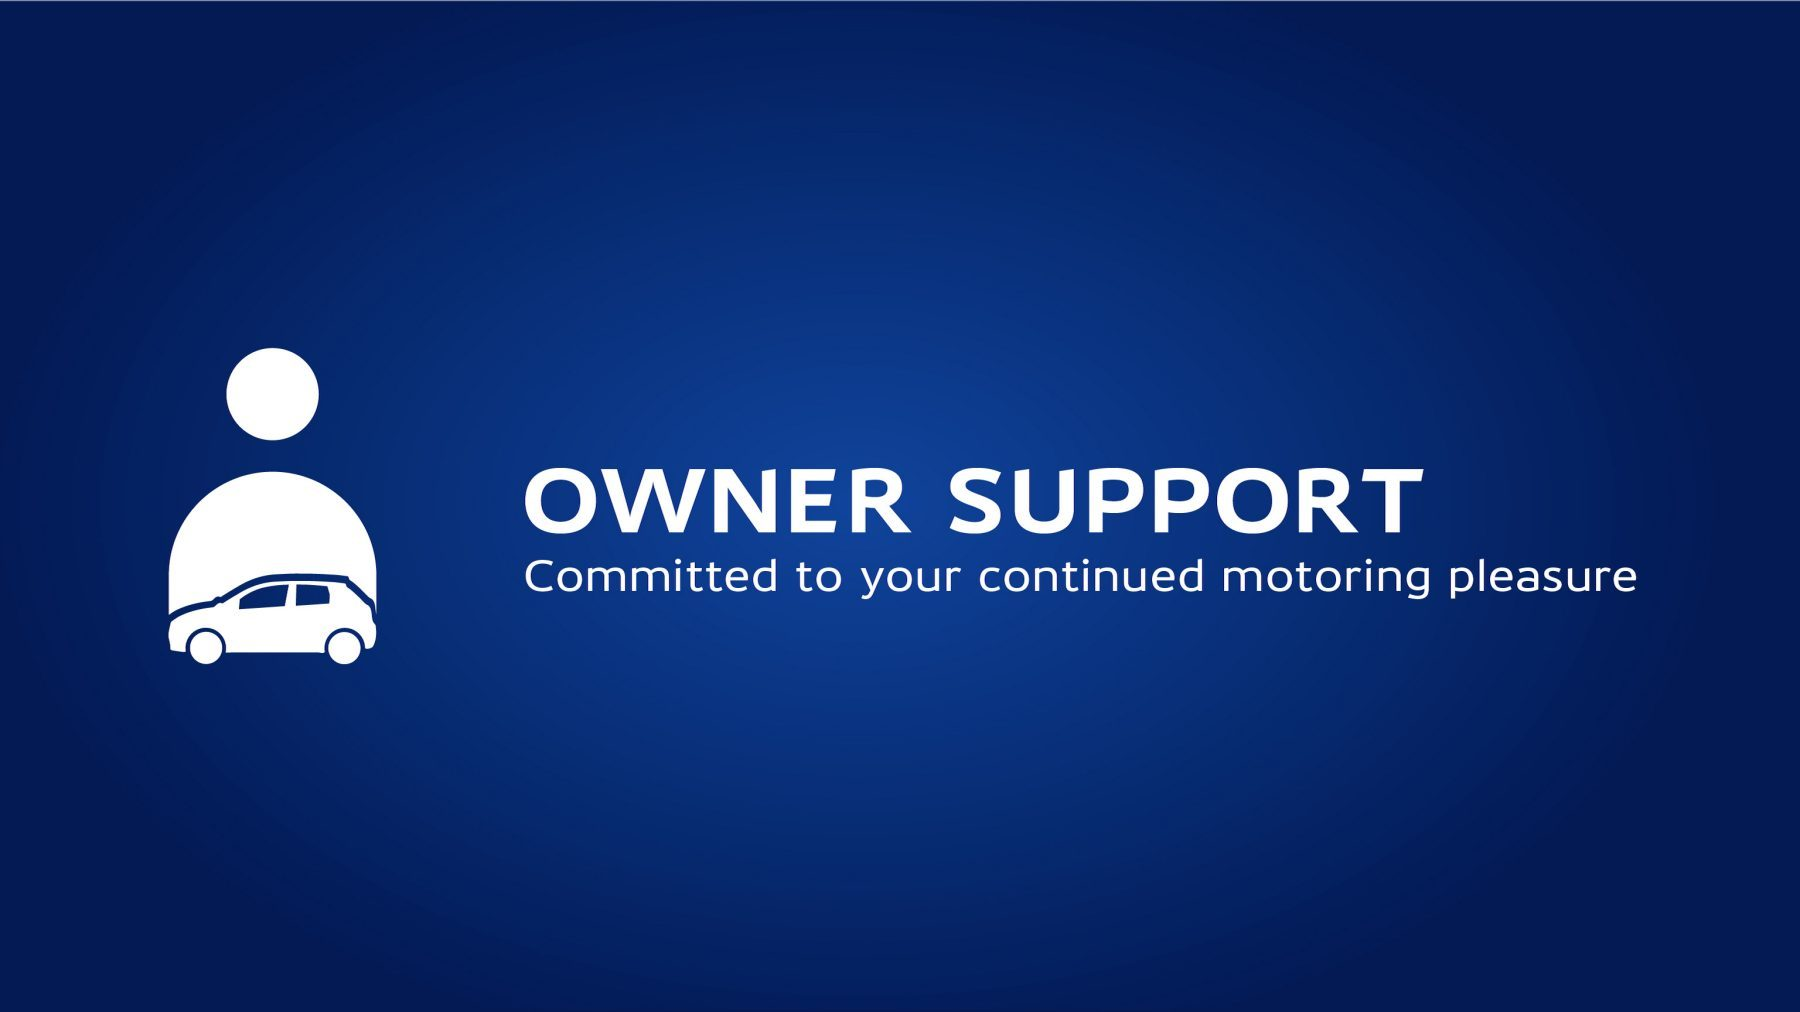 Owner Support